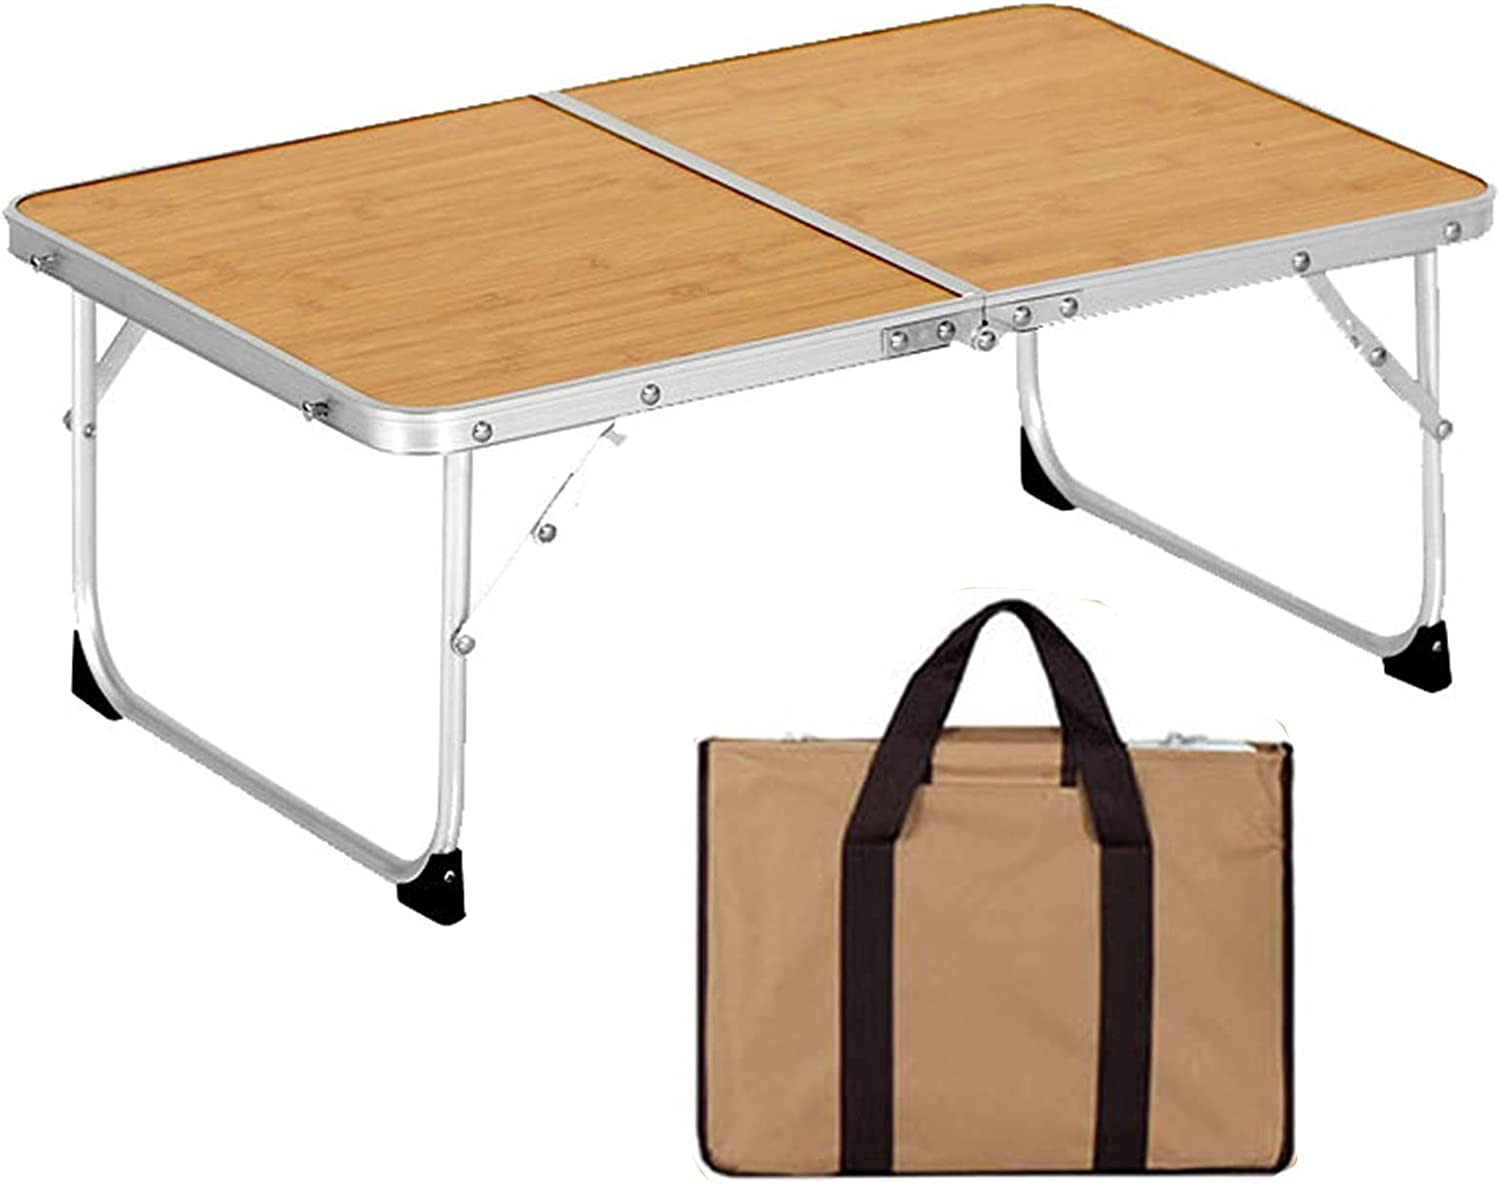 XUEMEI Free shipping Cheap on posting reviews Foldable Camping Picnic Table Portable Not Outdoor Indoor